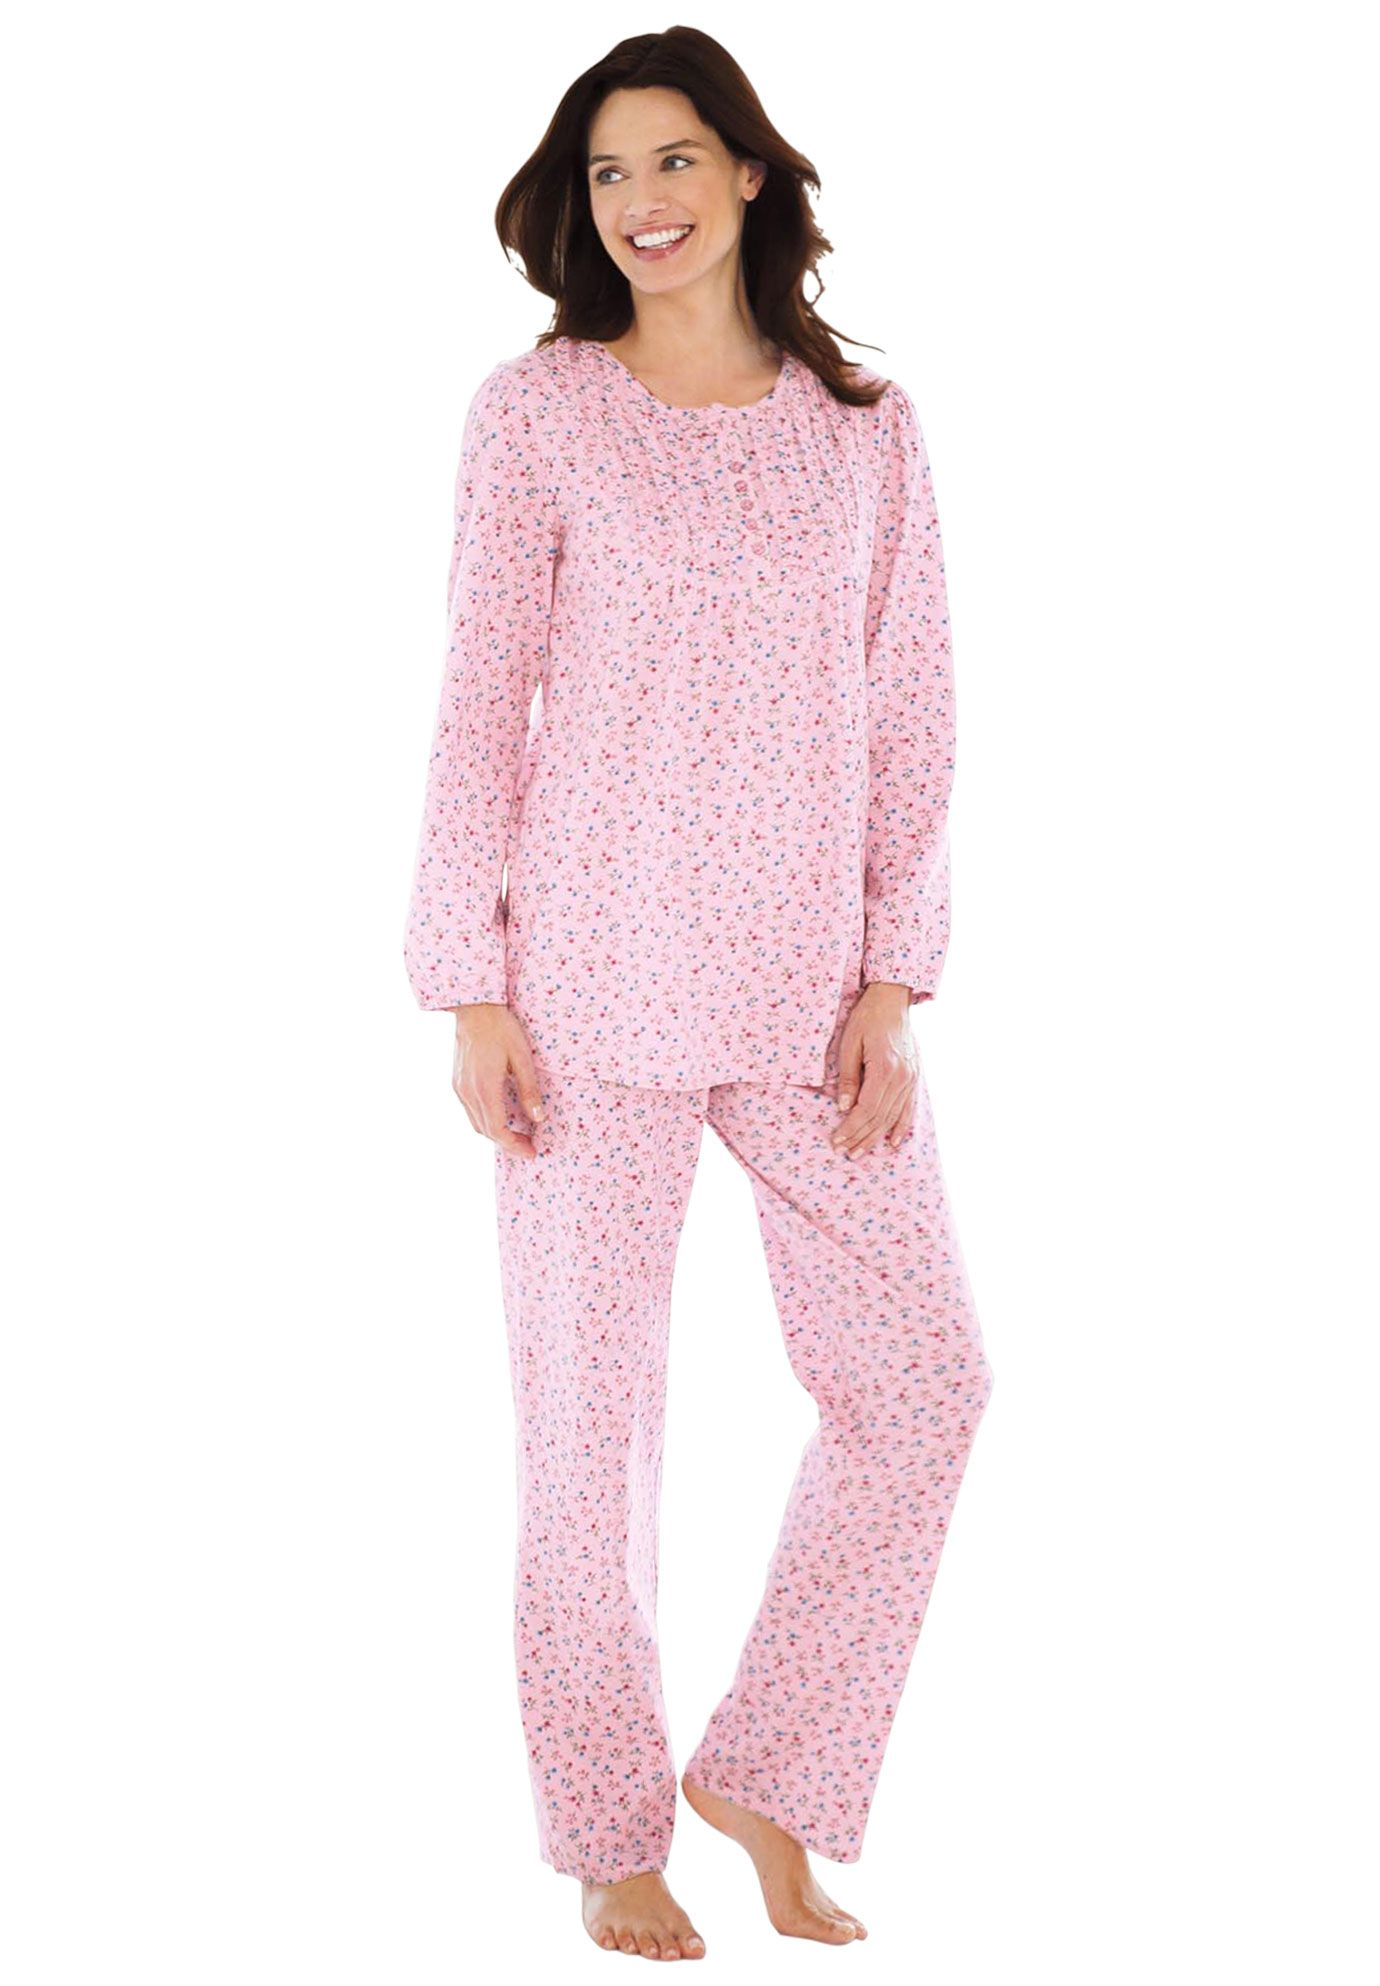 Cotton Knit Ruffled Pajamas By Only Necessities From Woman Within Plus Size Pajamas Plus Size Intimates Pajama Set Women